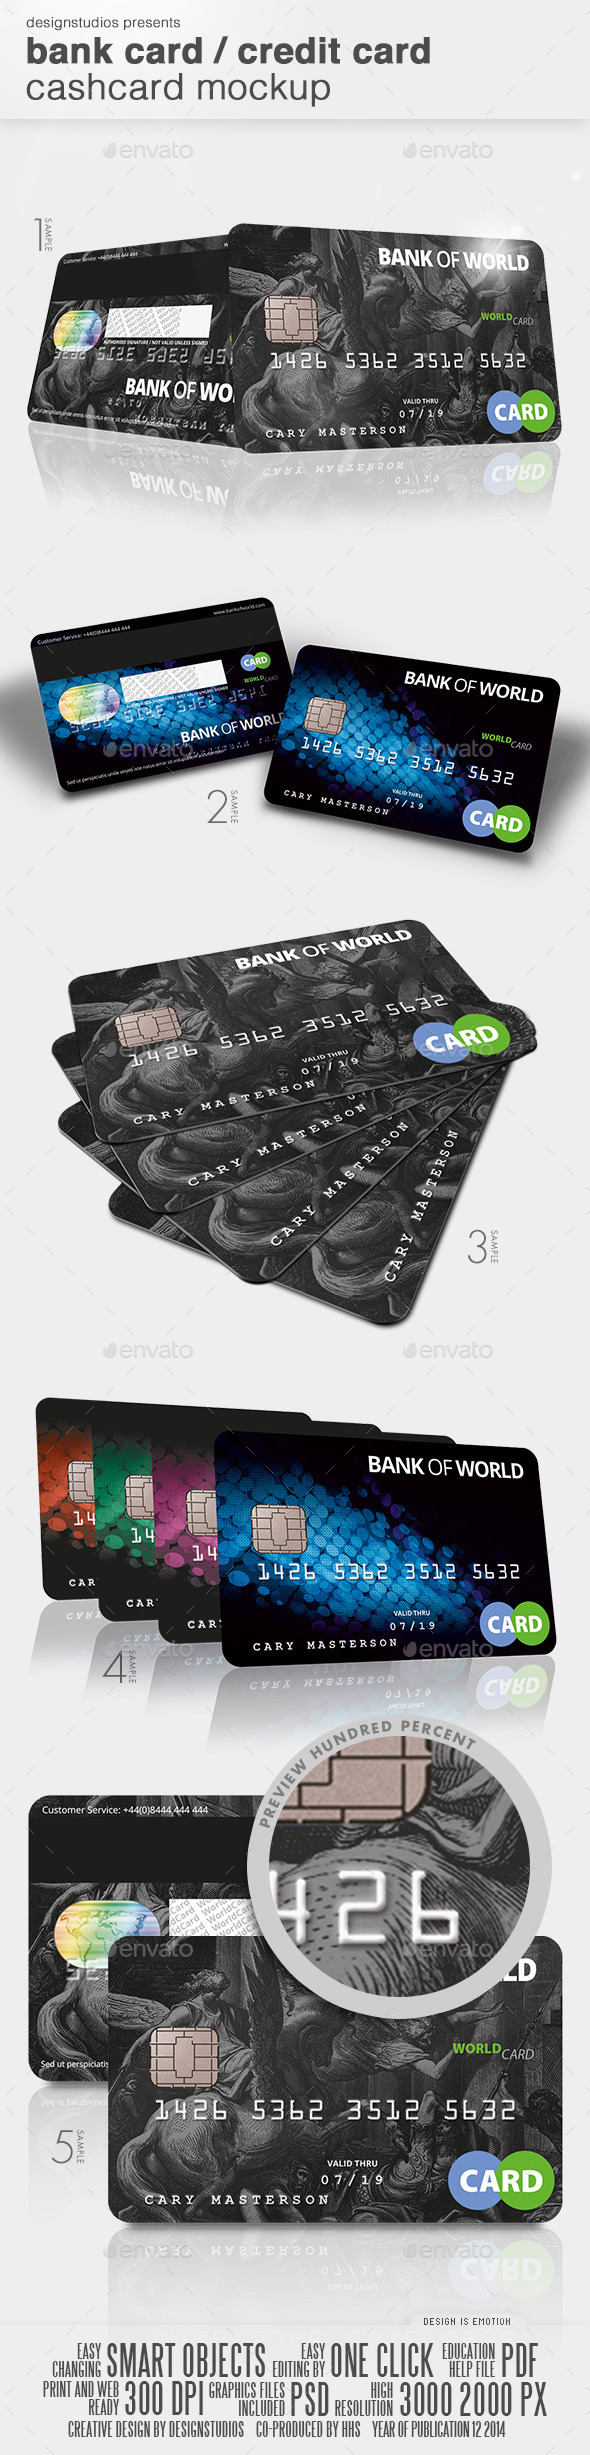 GraphicRiver Bank Card Credit Card CashCard Mock-Up 9846708